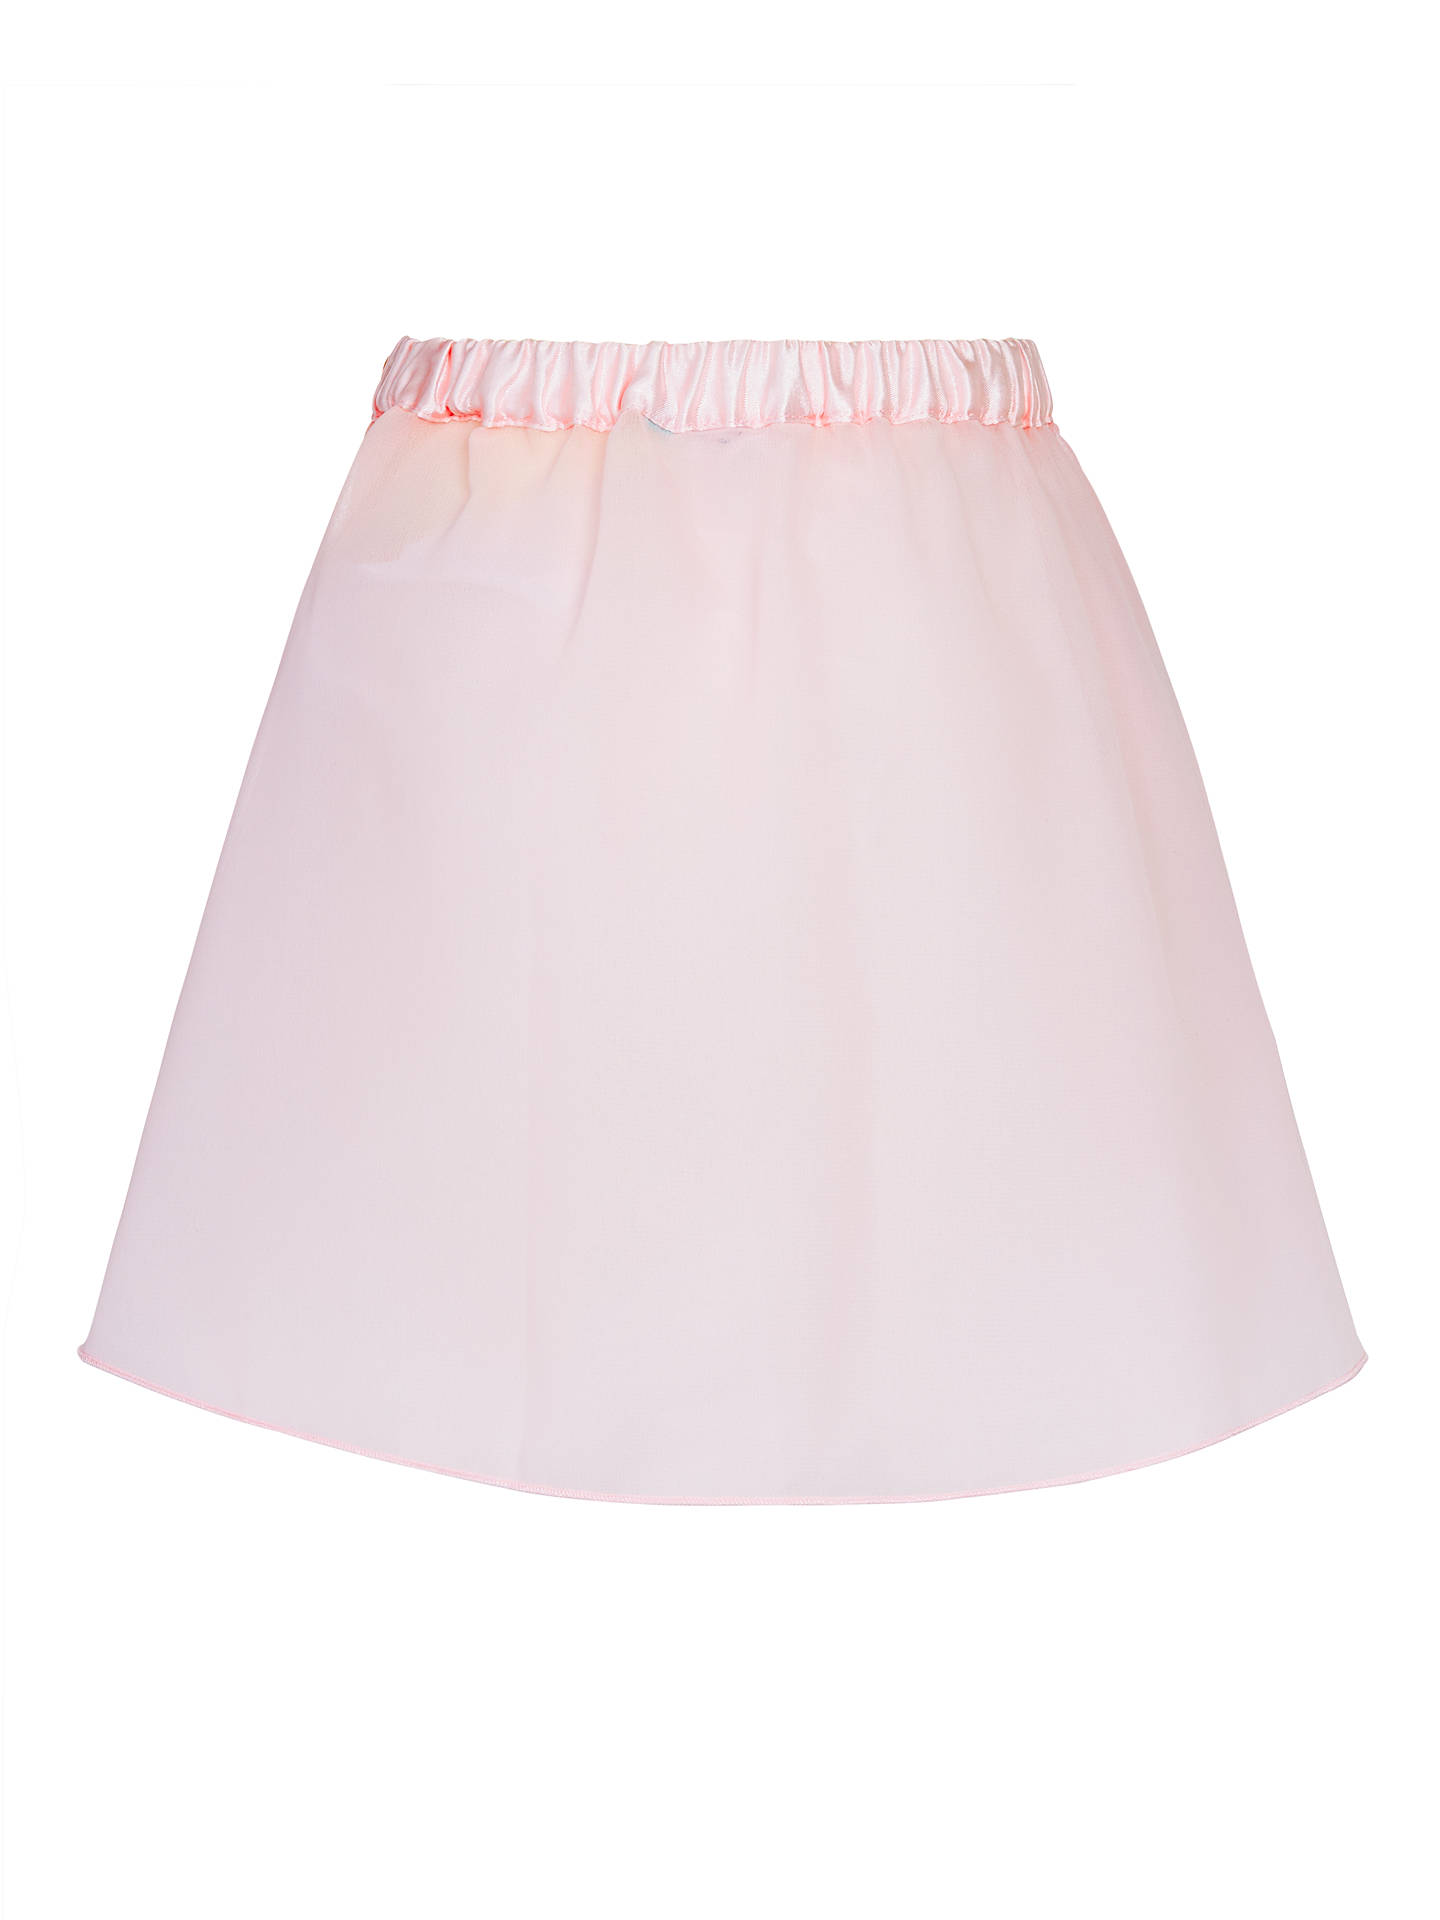 BuyJohn Lewis & Partners Girls' Chiffon Ballet Skirt, Pink, 2 years Online at johnlewis.com